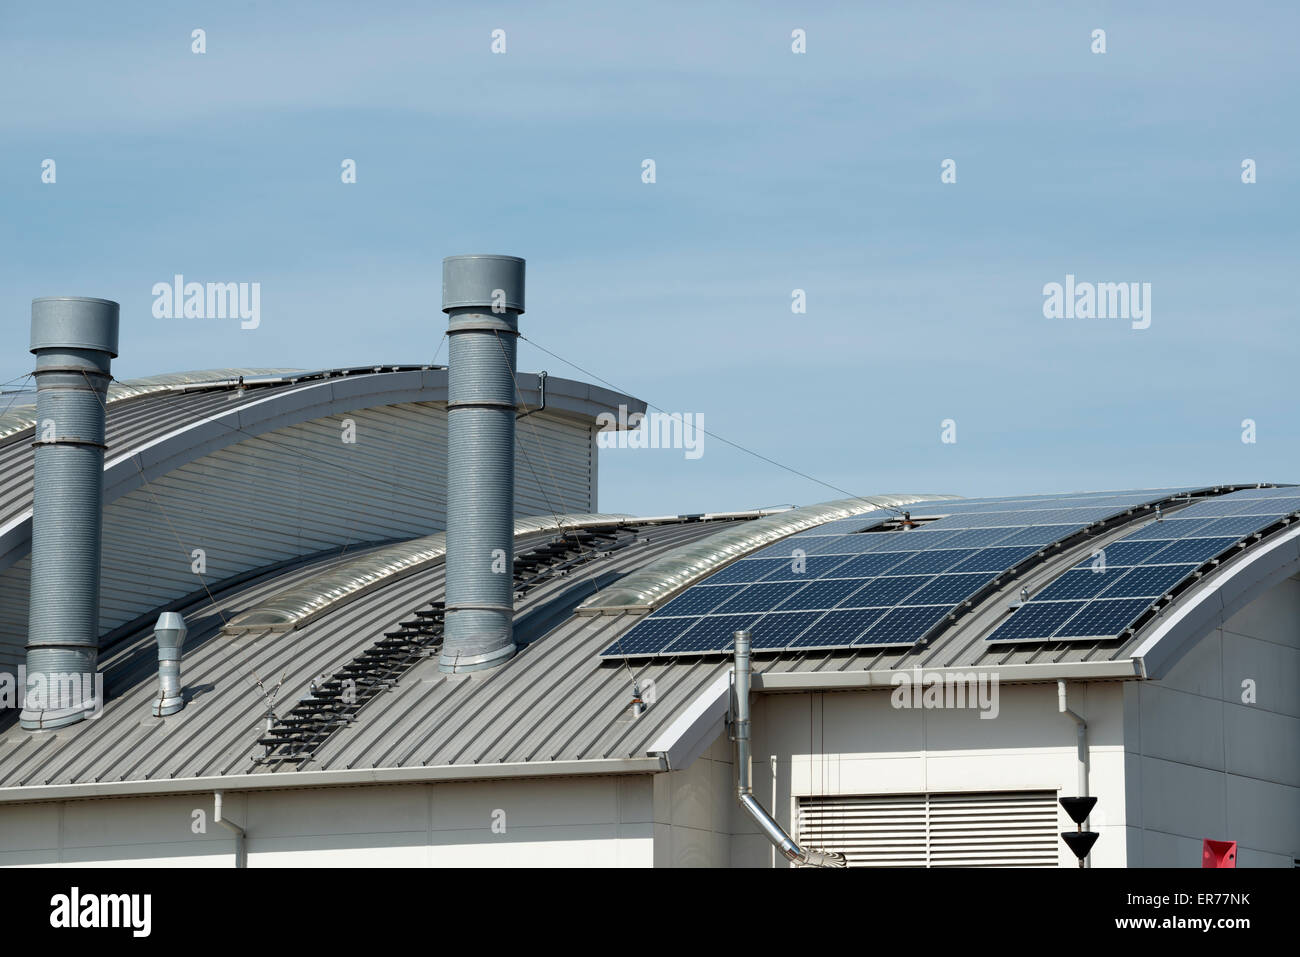 Solar panels on a Trinity House warehouse, Harwich, Essex, UK. - Stock Image